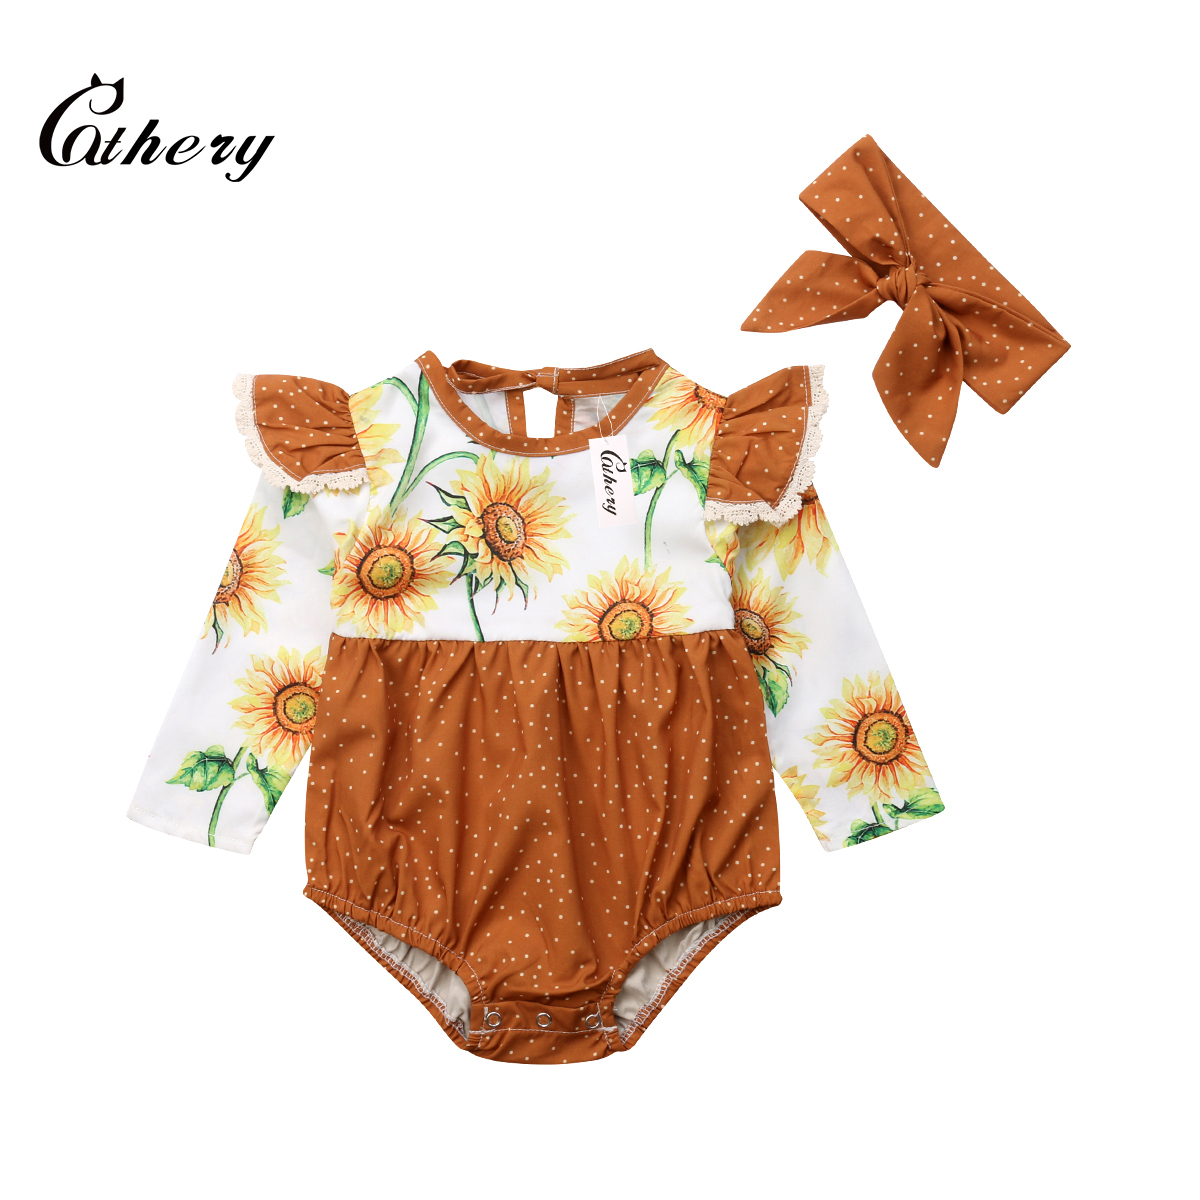 8078b8dc4622 Cathery Fashion Sunflower Toddler Infant Baby Girl Fly Sleeve Romper  Jumpsuit 2Pcs Outfits Clothes-in Rompers from Mother   Kids on  Aliexpress.com